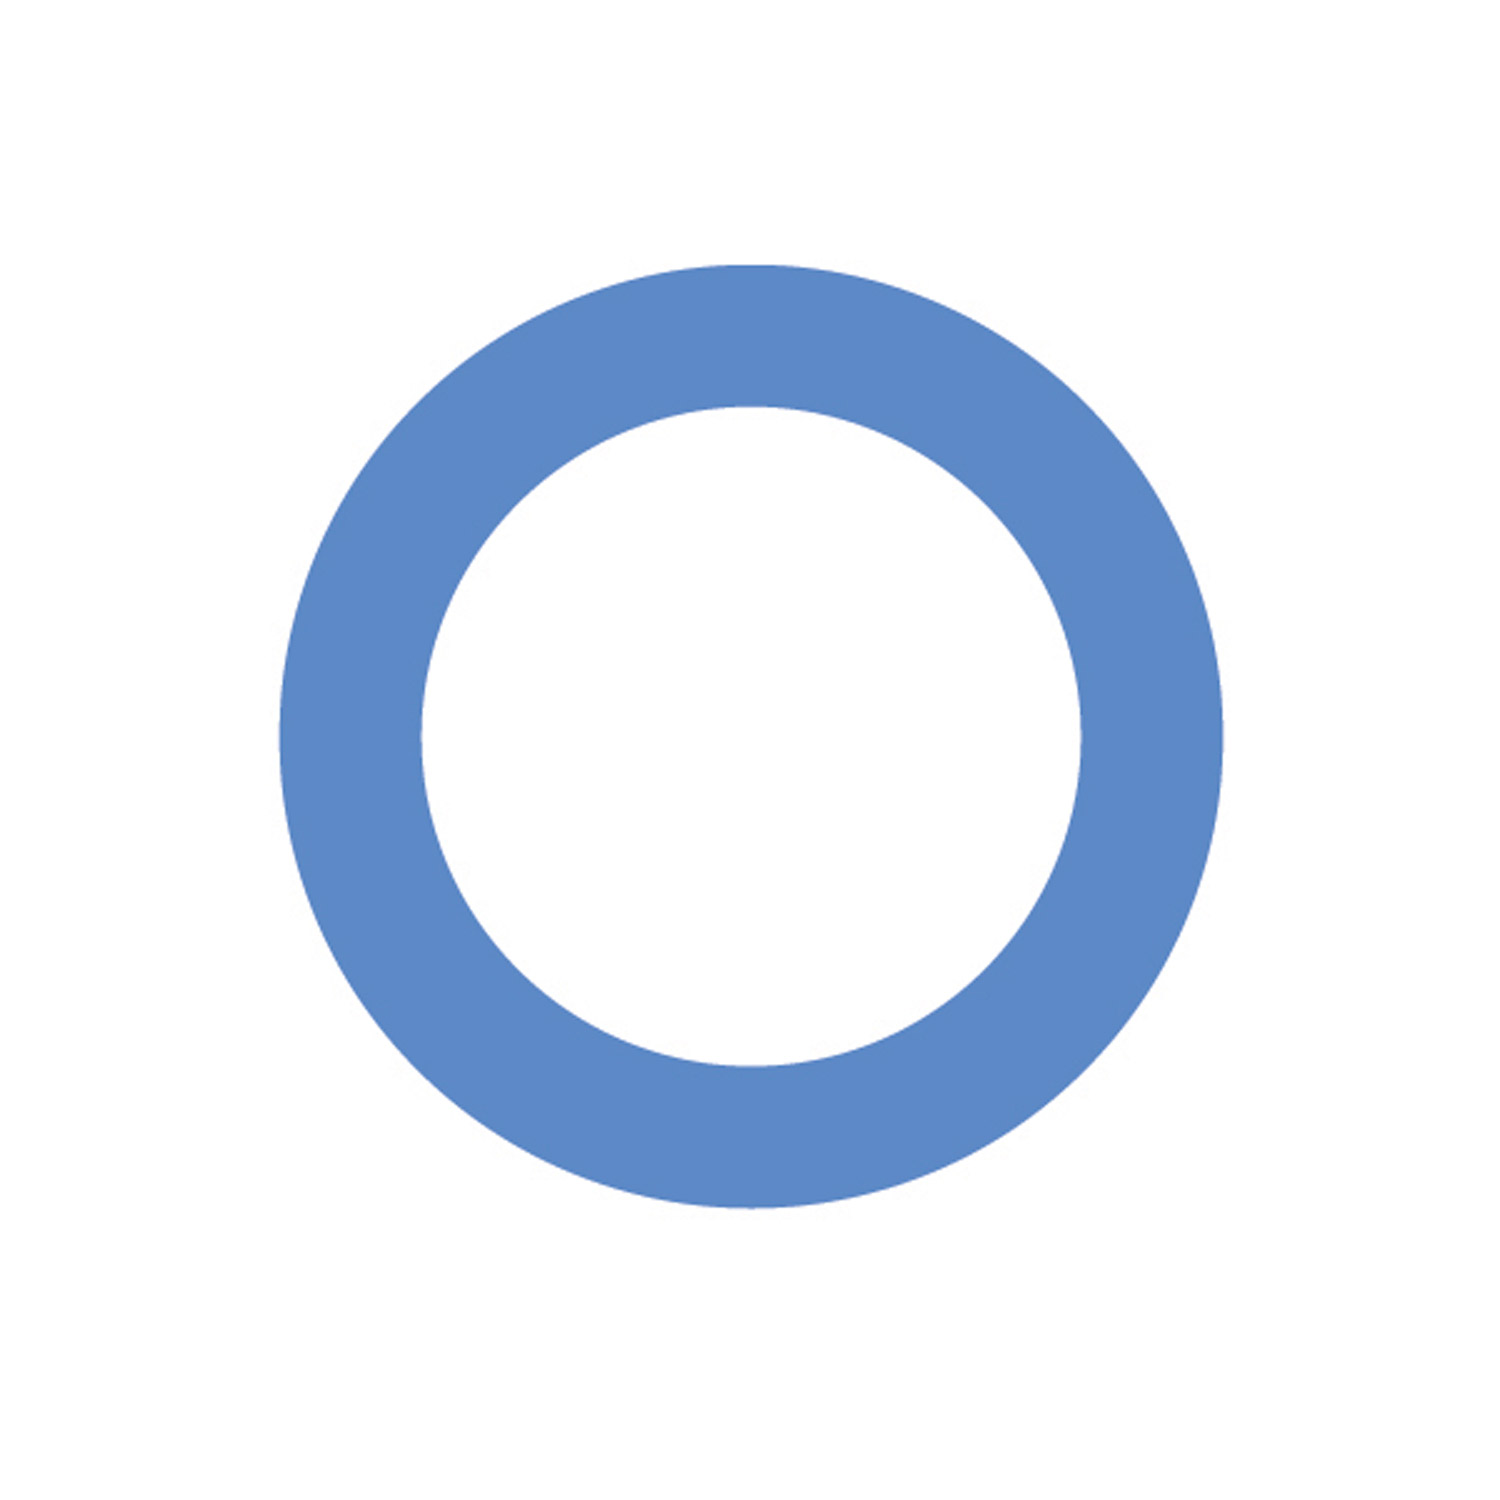 The international symbol for Diabetes developed by the International Diabetes Federation was the foundation for the concept of the 2014 symposium design.